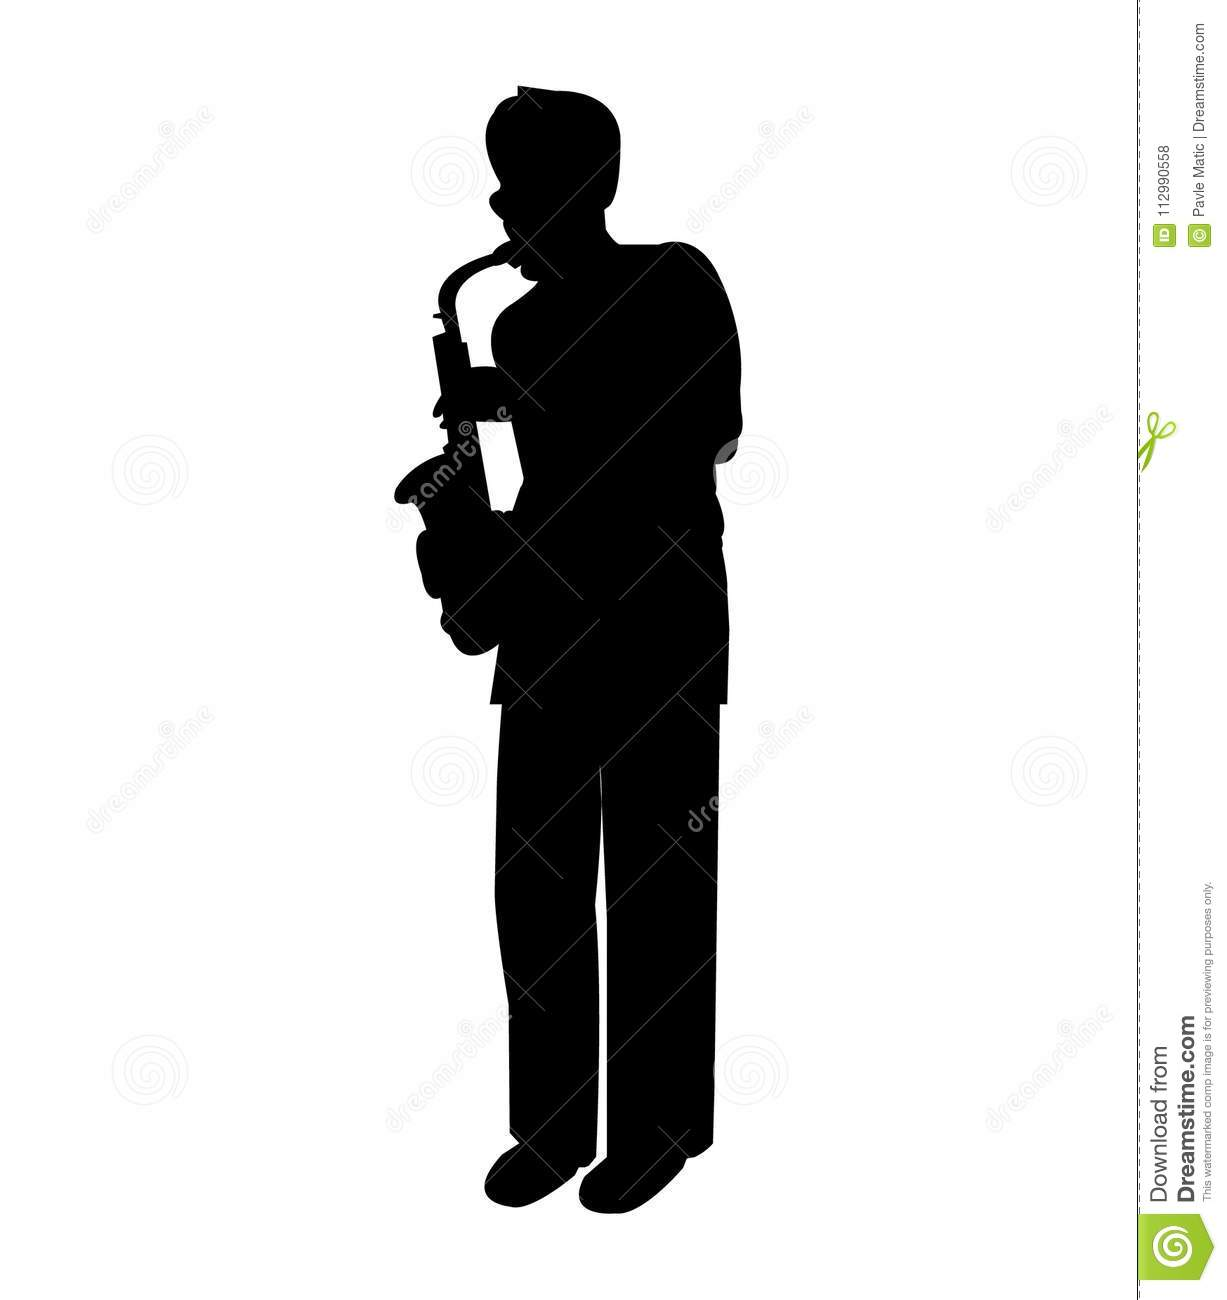 Silhouette of a male saxophone player